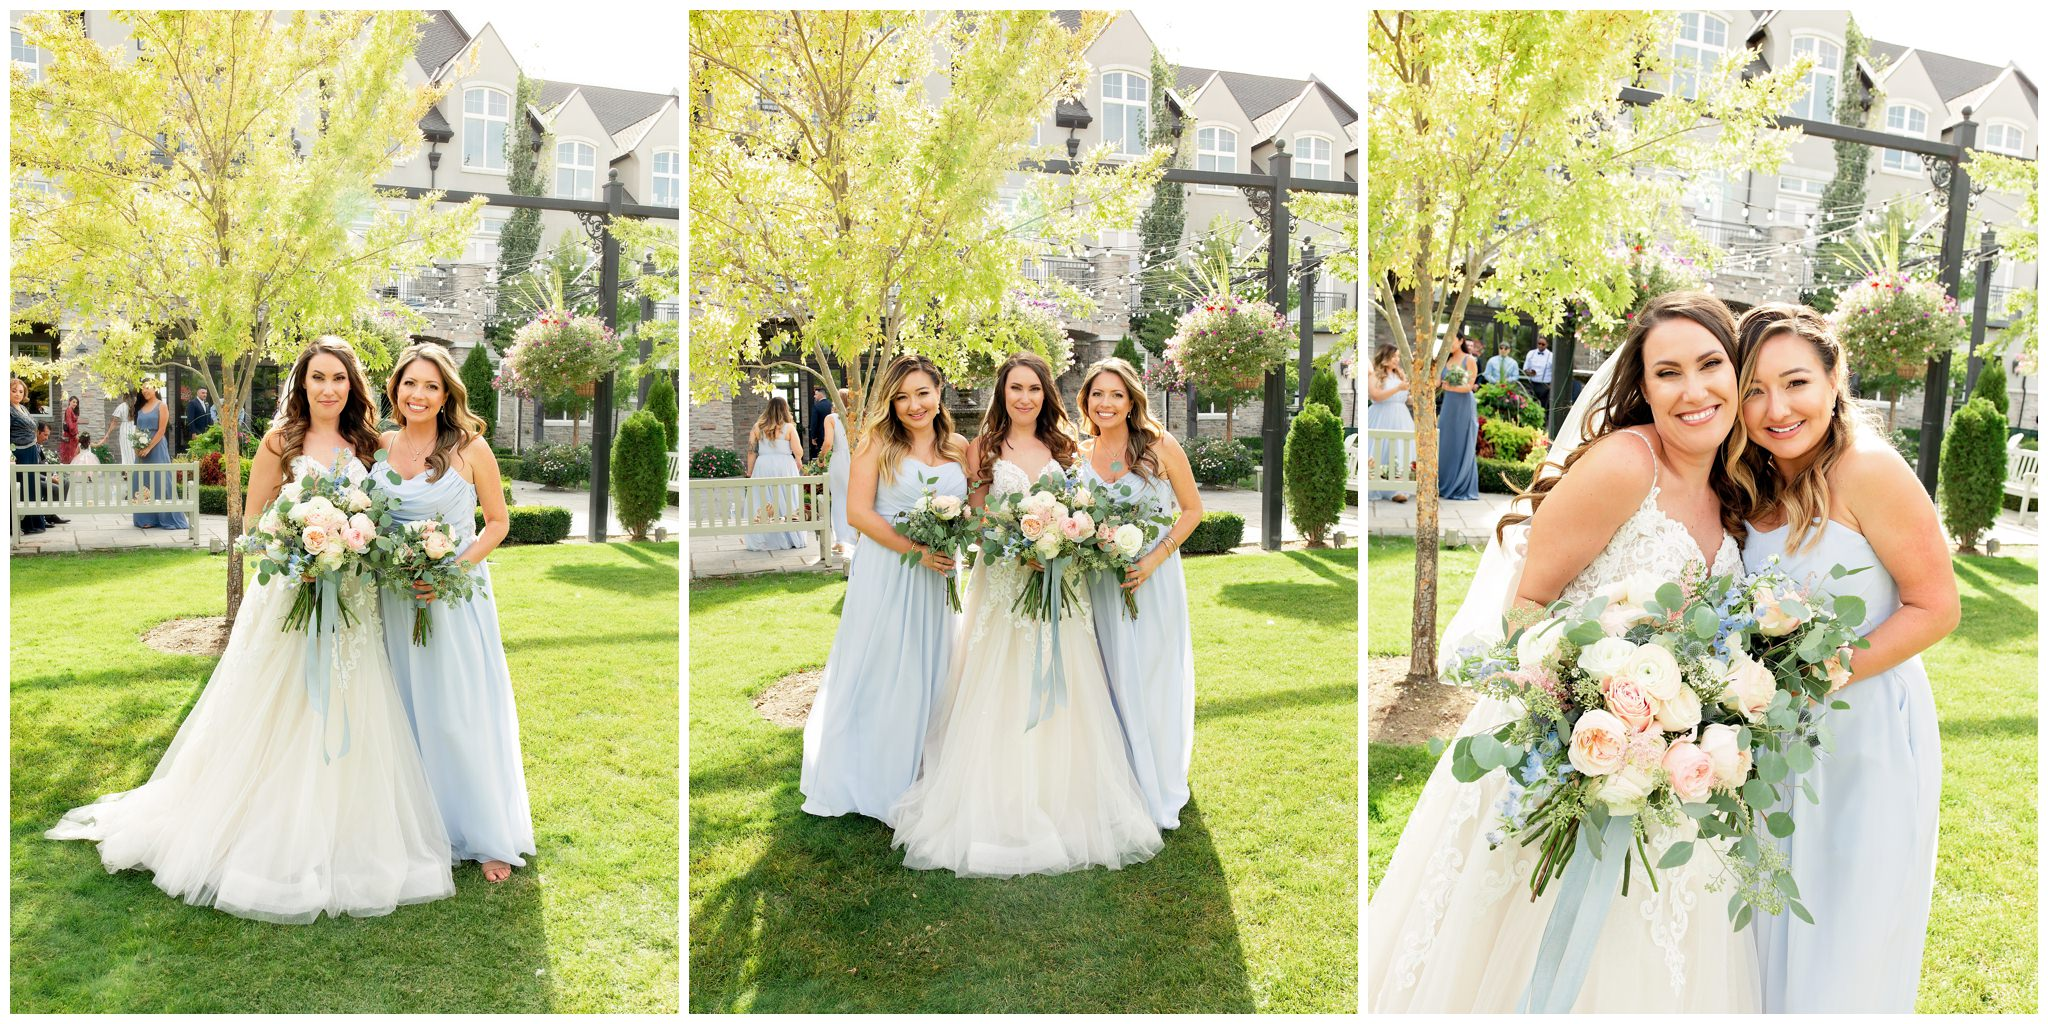 Bride with her bridesmaids who are wearing blue dresses